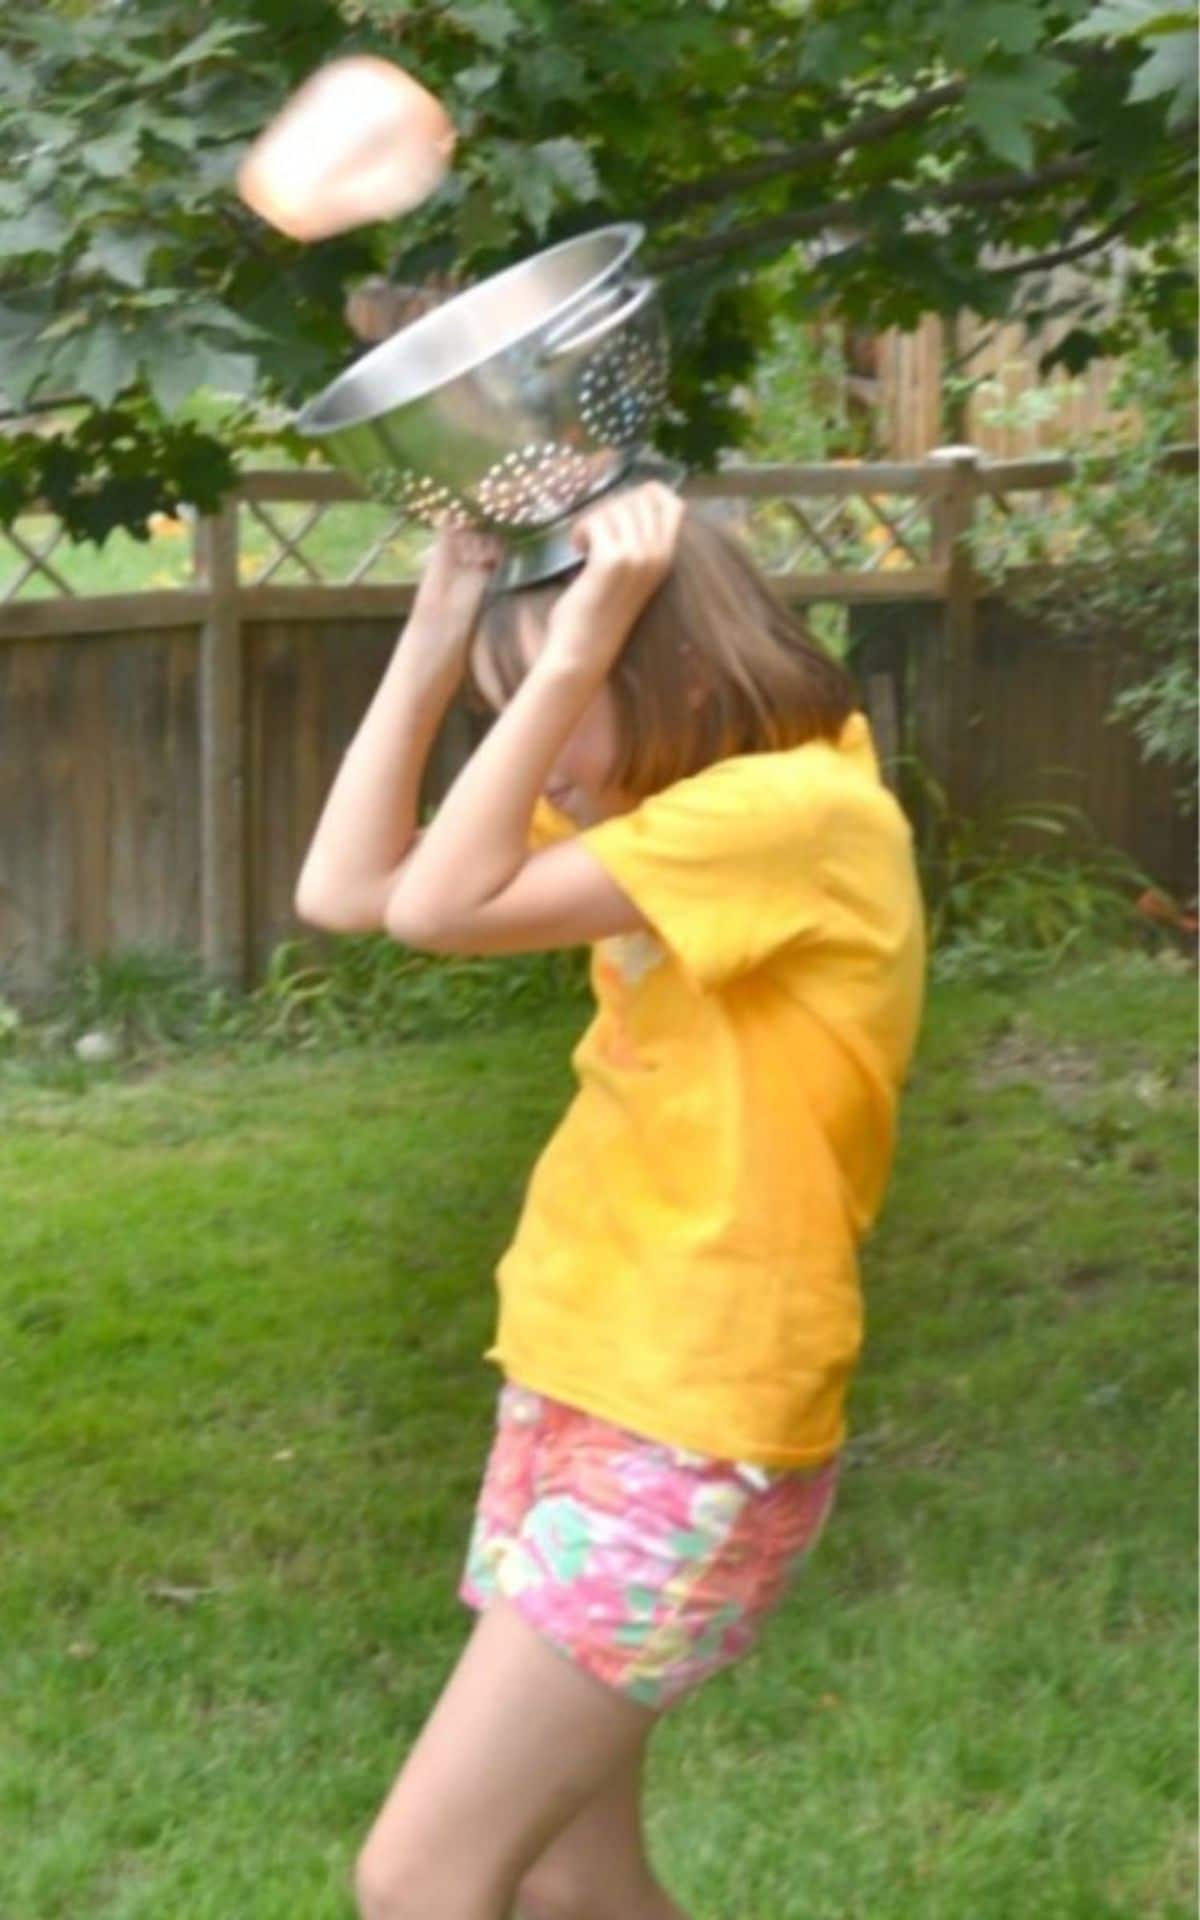 a girl in a yellow shirt and shorts is in a garden with a colander on her head. A sponge is heading into the colander